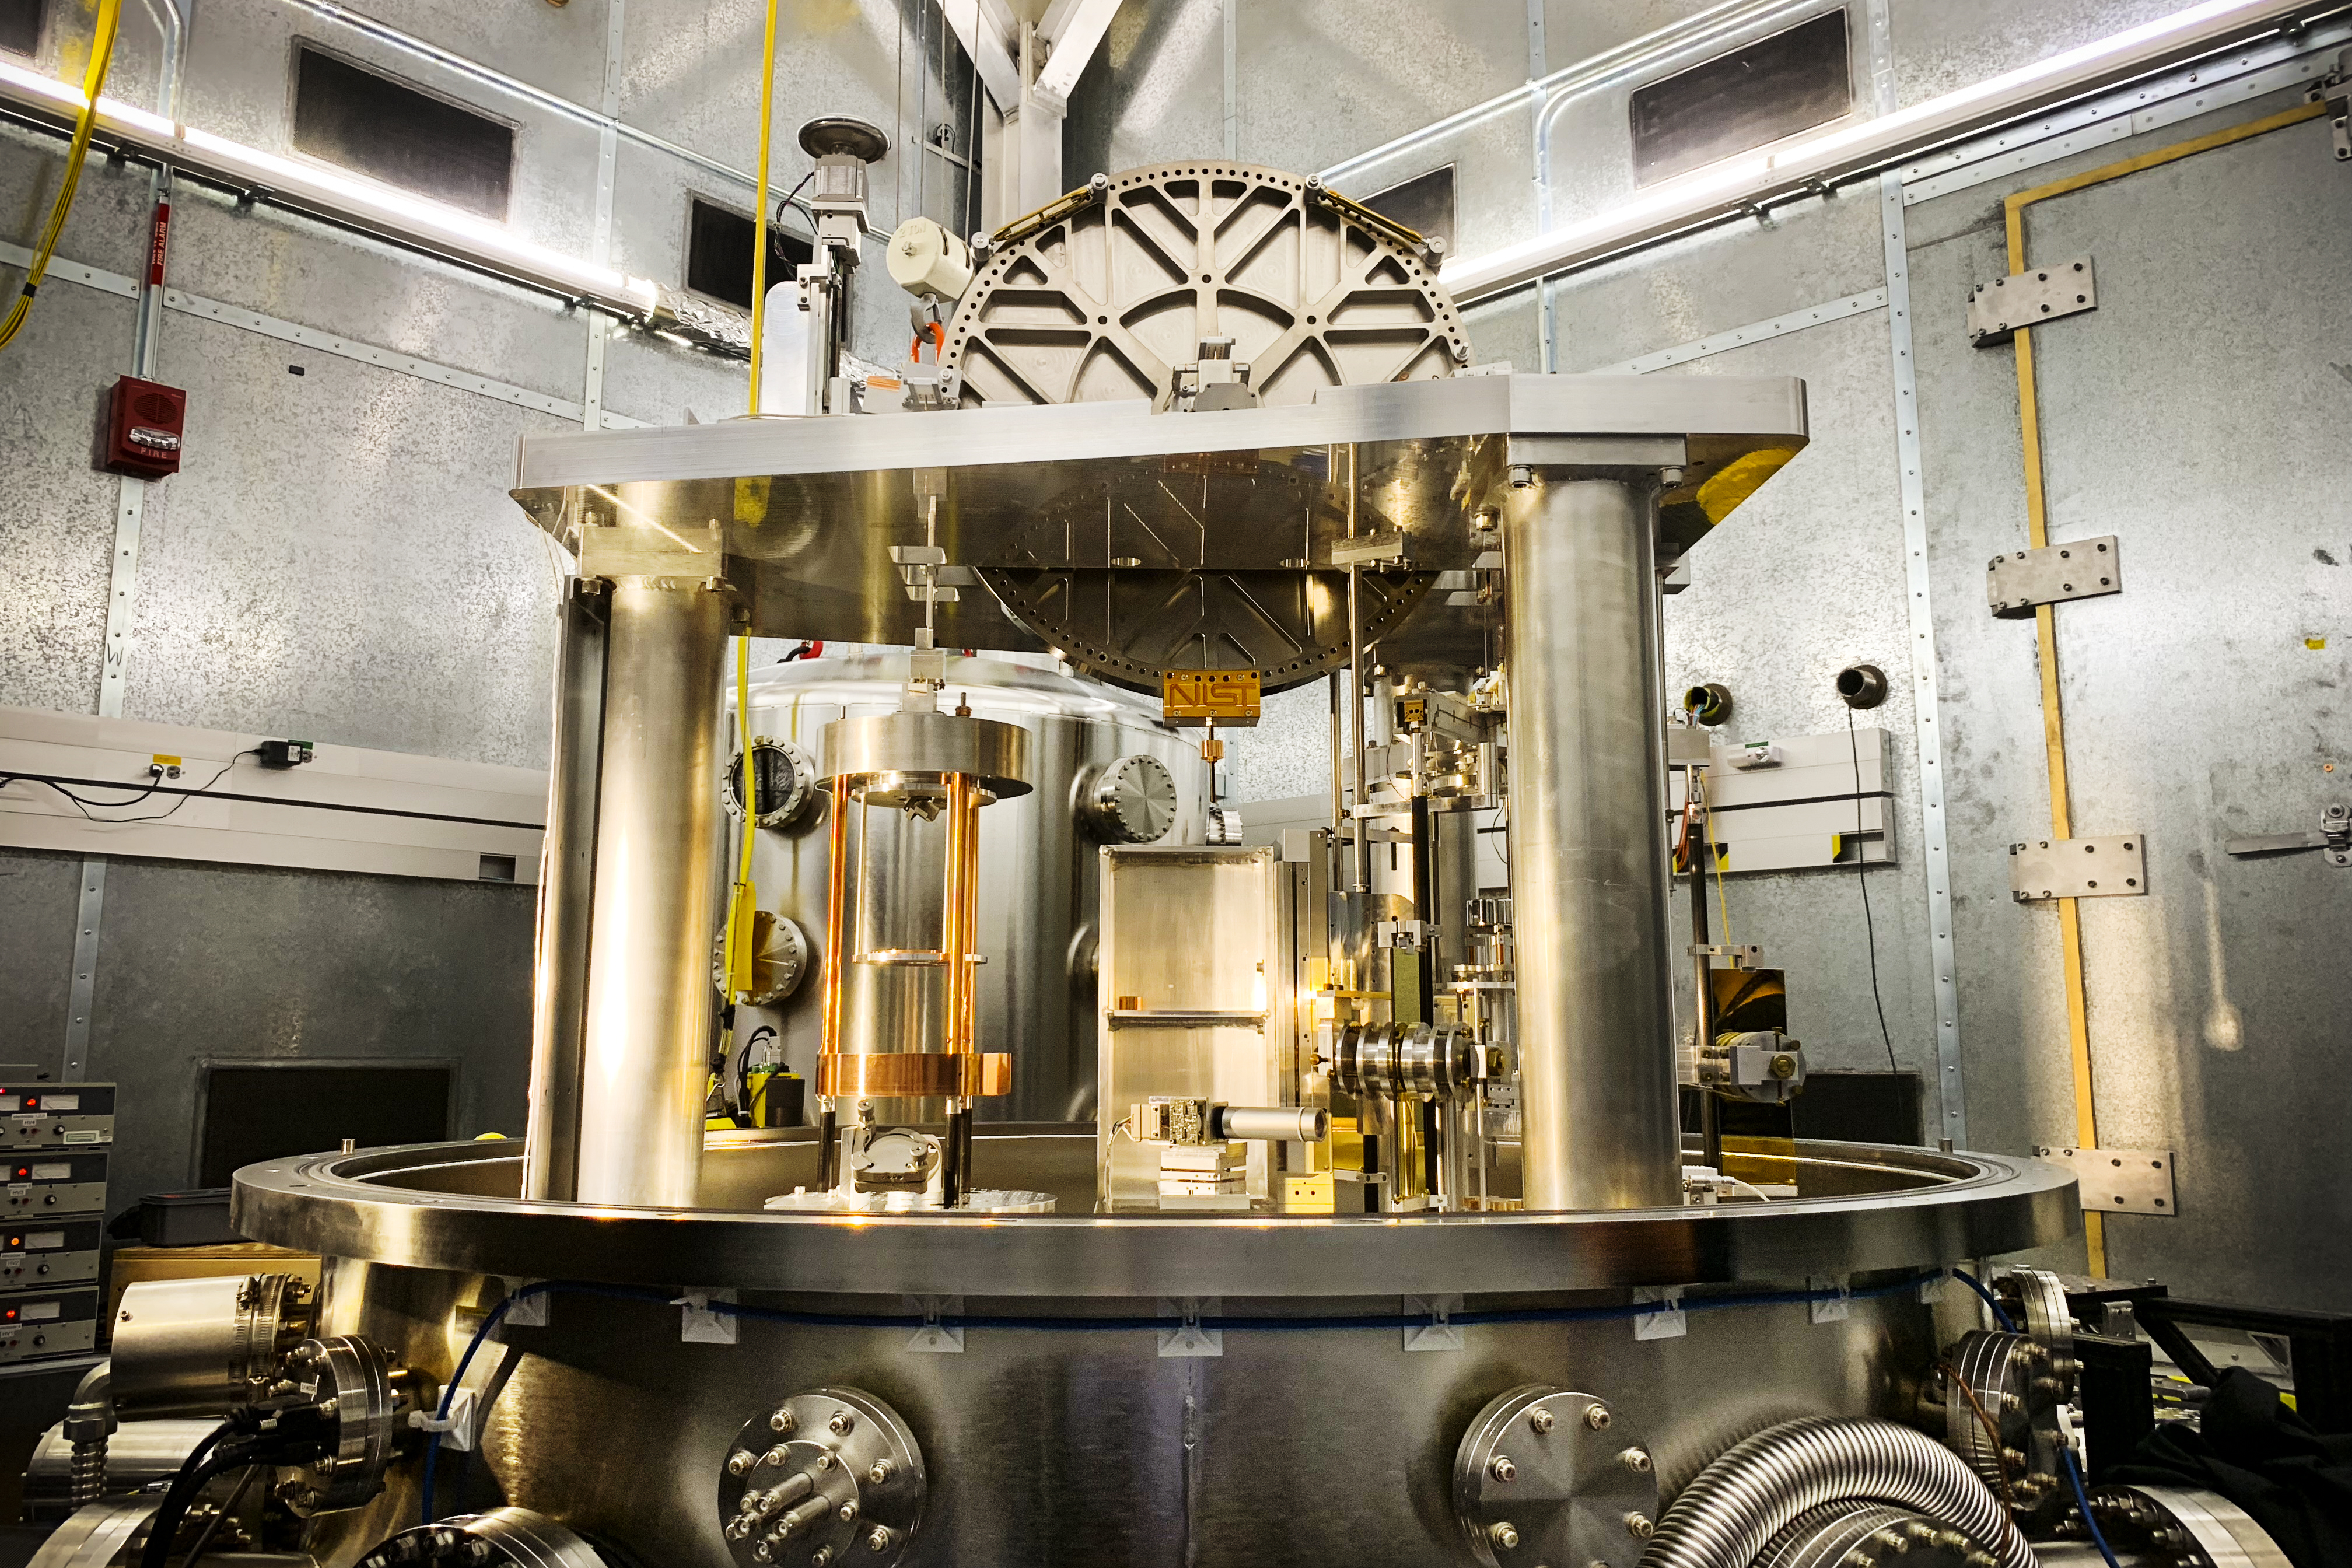 New kilogram standard: how the SI unit of mass is being redefined - Vox